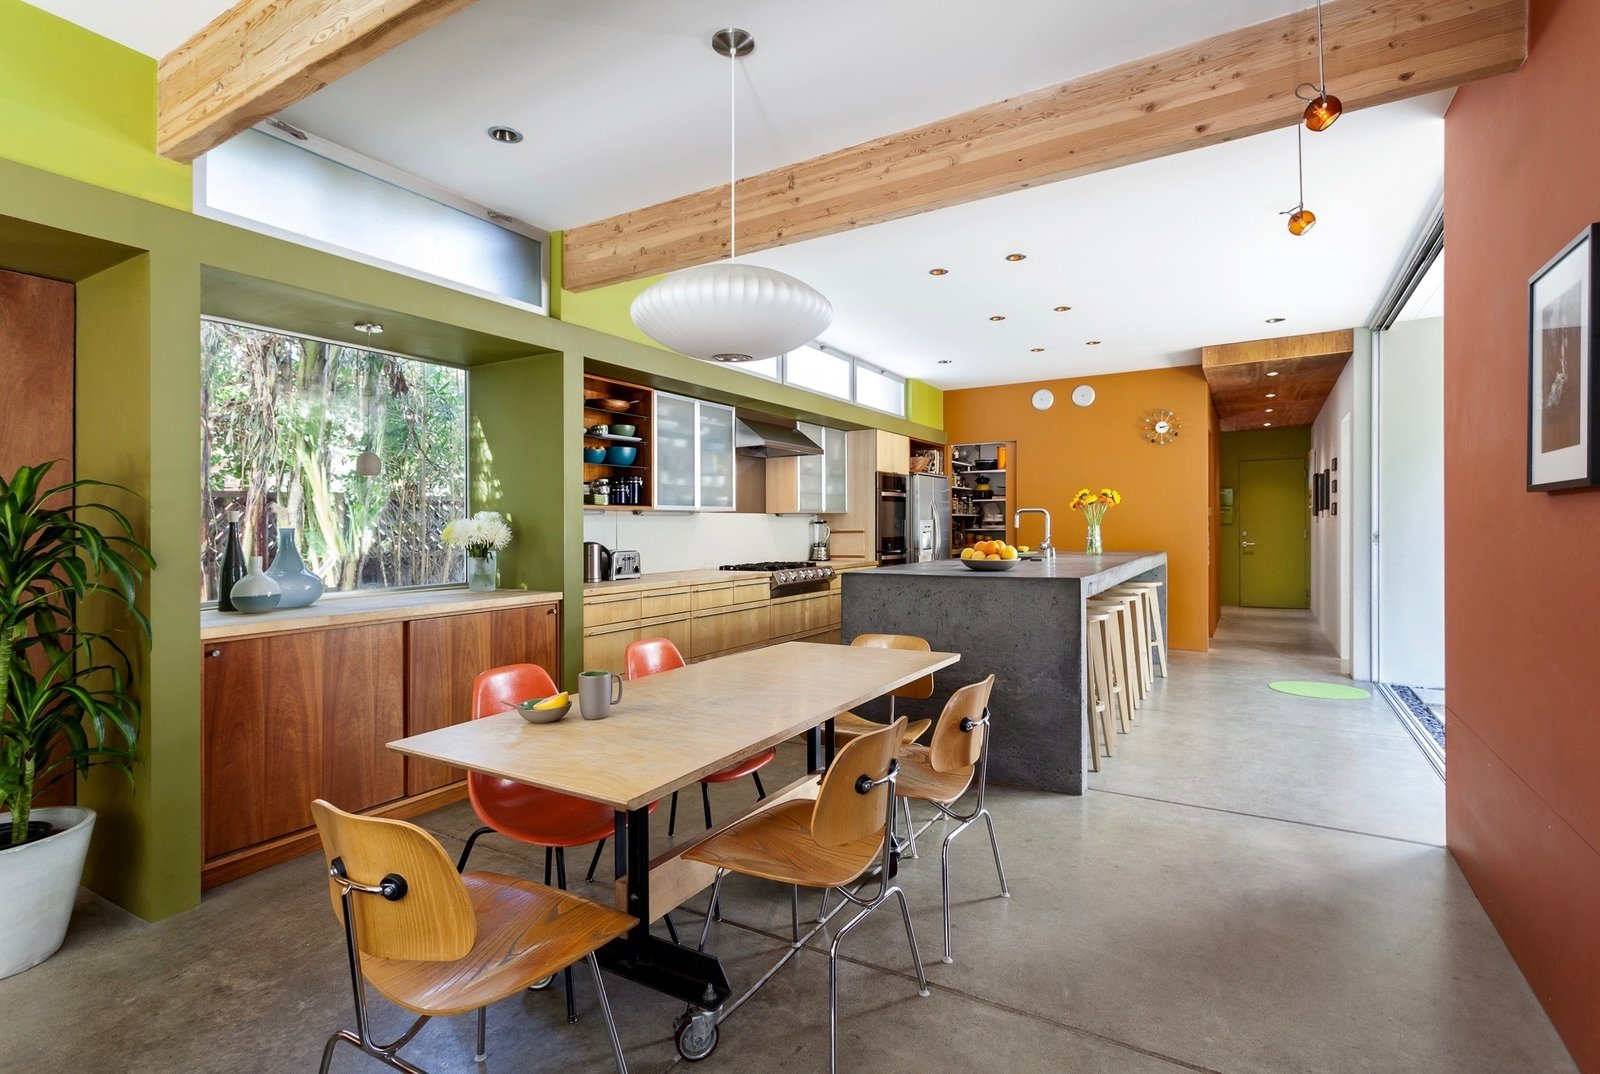 Concrete Counter, Dining Room, Table, Bar, Stools, Accent Lighting, Chair, Storage, Pendant Lighting, Recessed Lighting, and Concrete Floor Dining Room to Kitchen  Land Park Residence by serrao design | Architecture